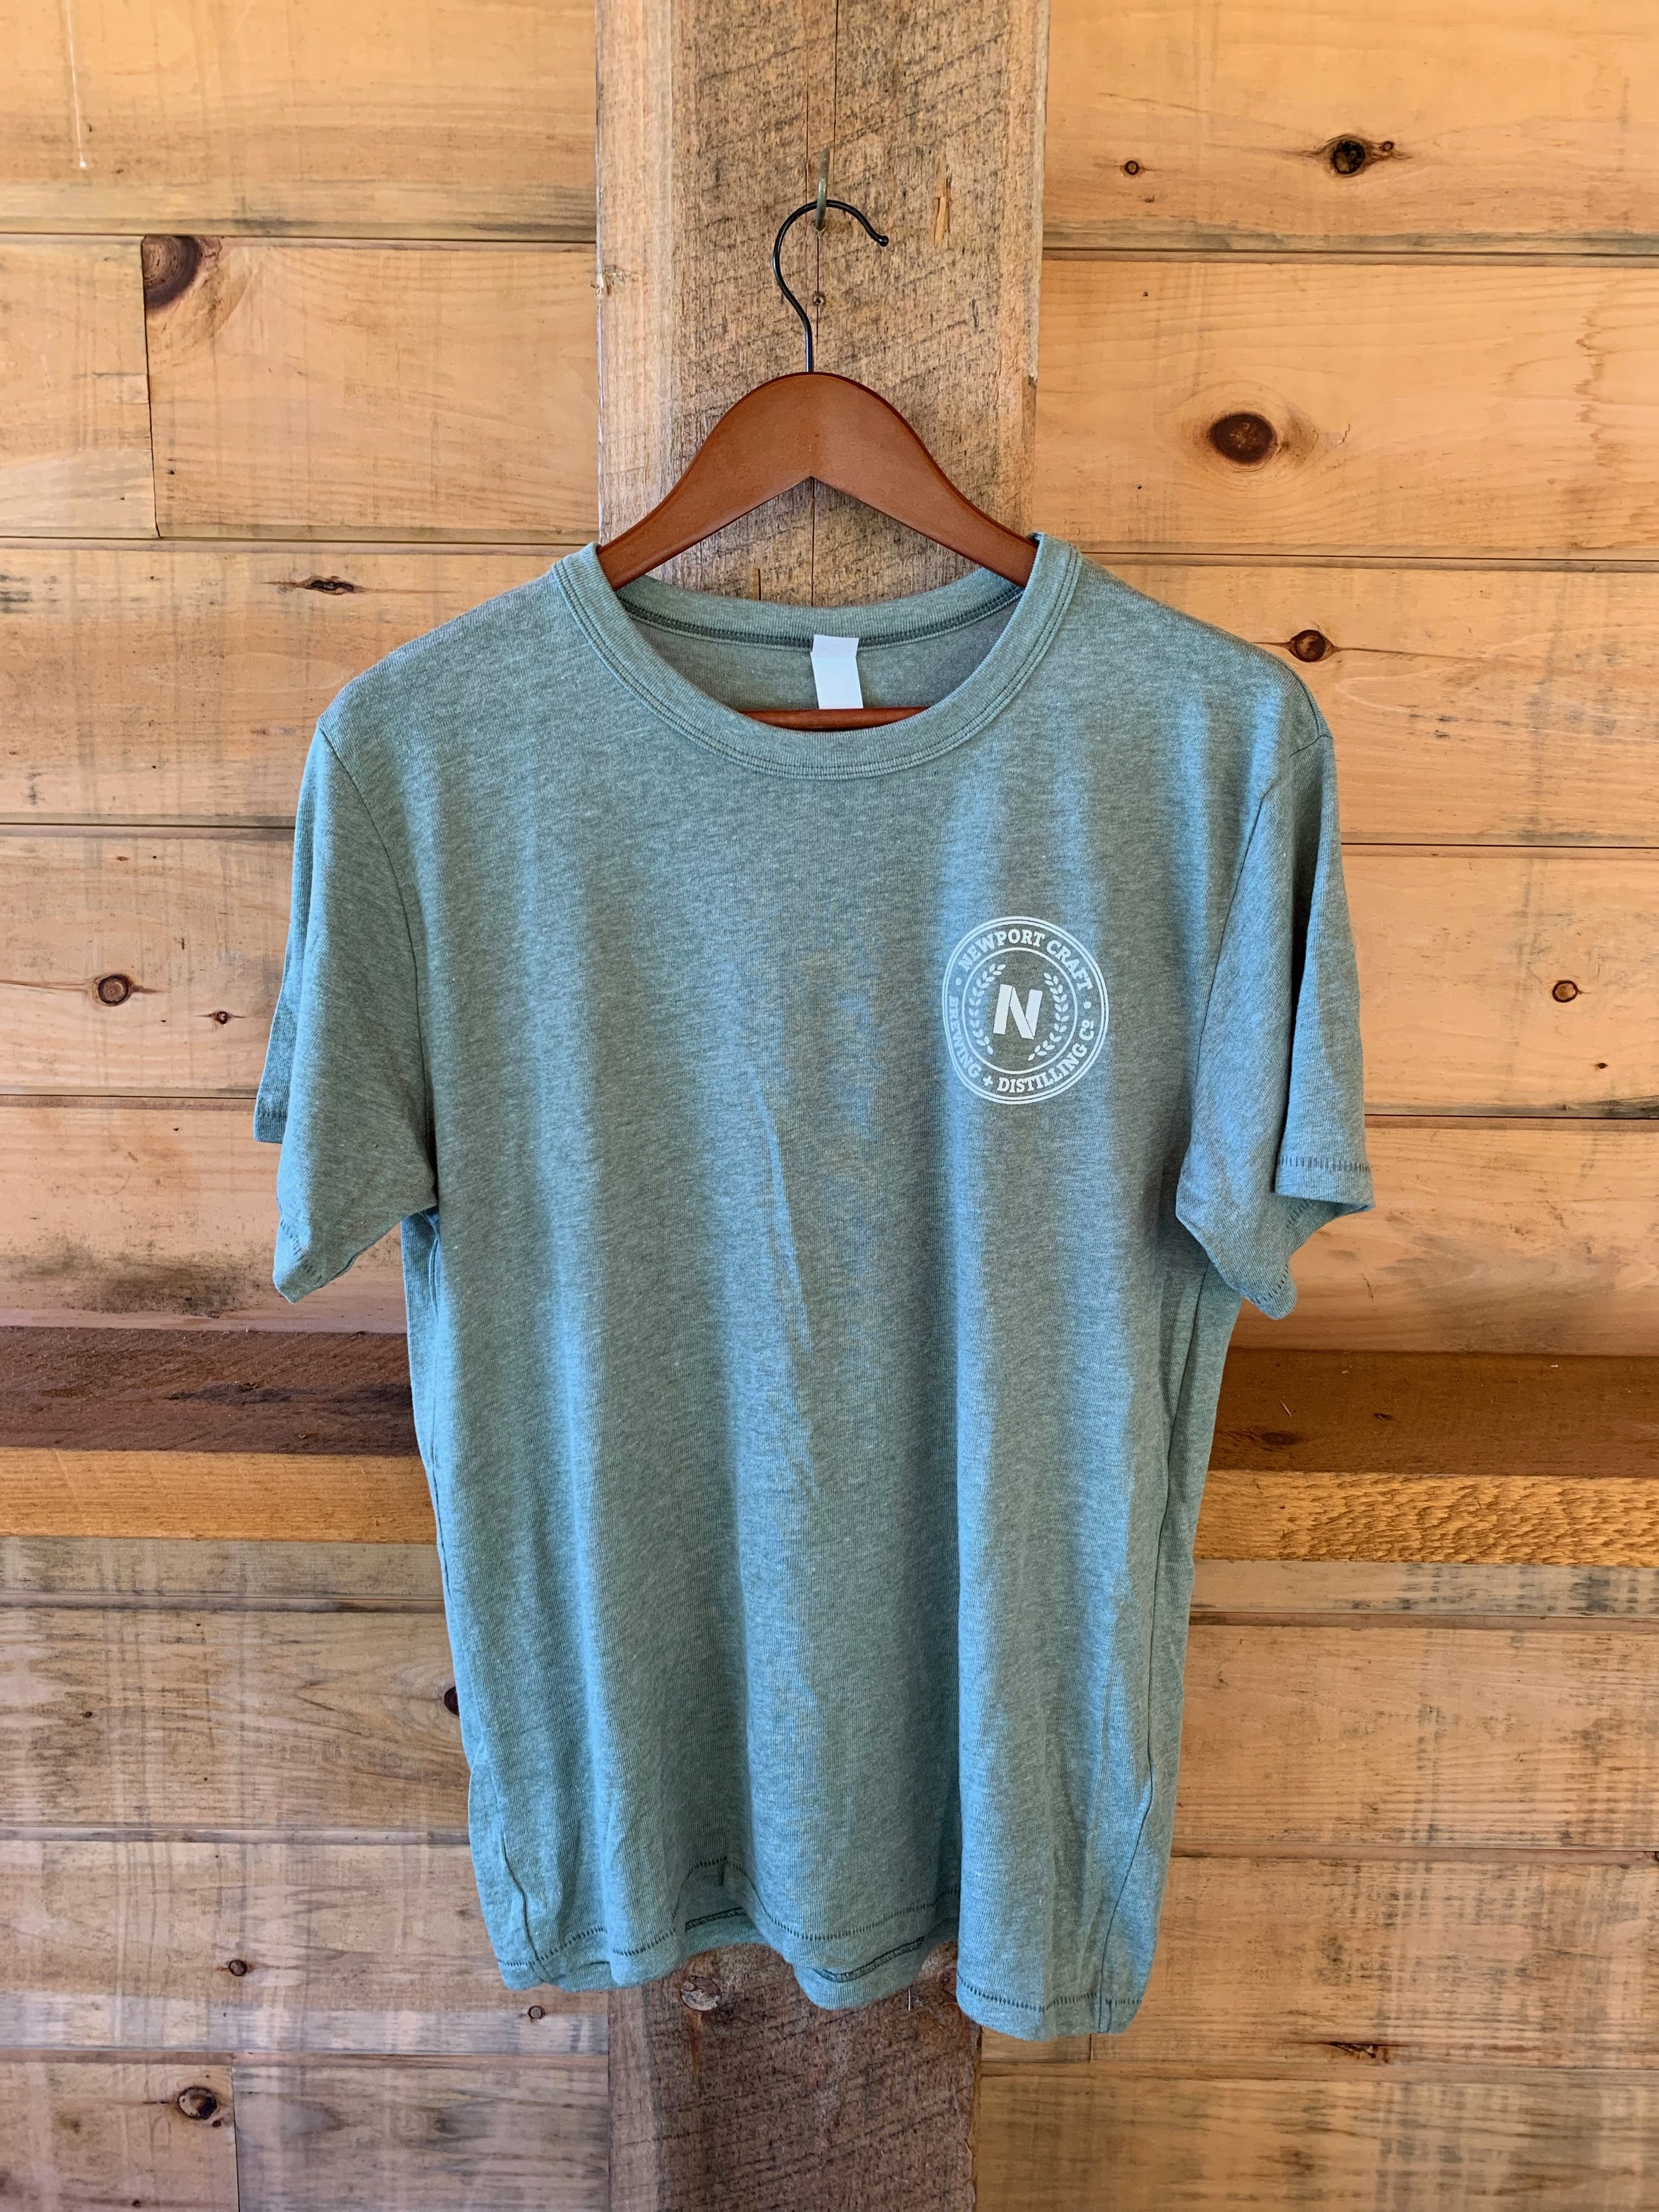 Light green t-shirt $20 - Available in XS-XXL.